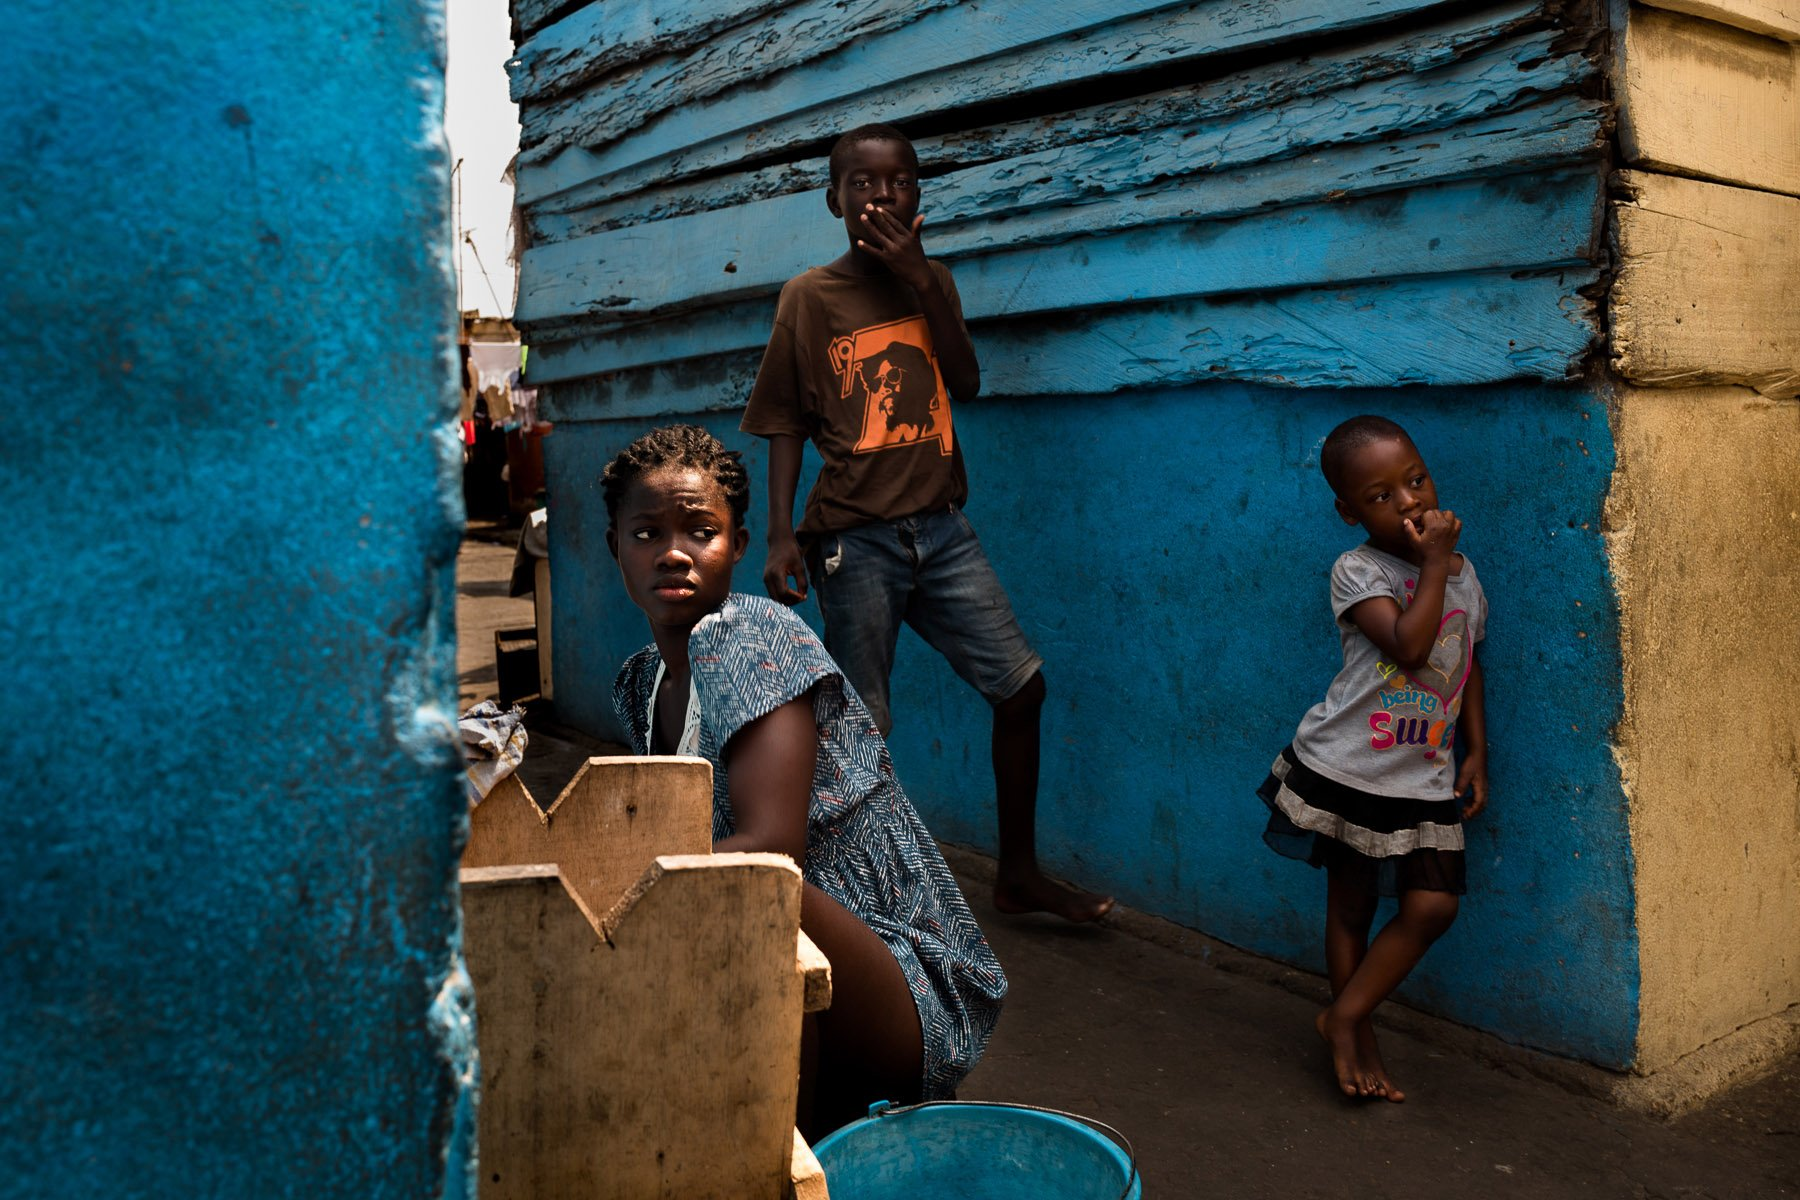 street photography, colorful images with high contrast and shadows in Ghana, Africa, by ivan Margot